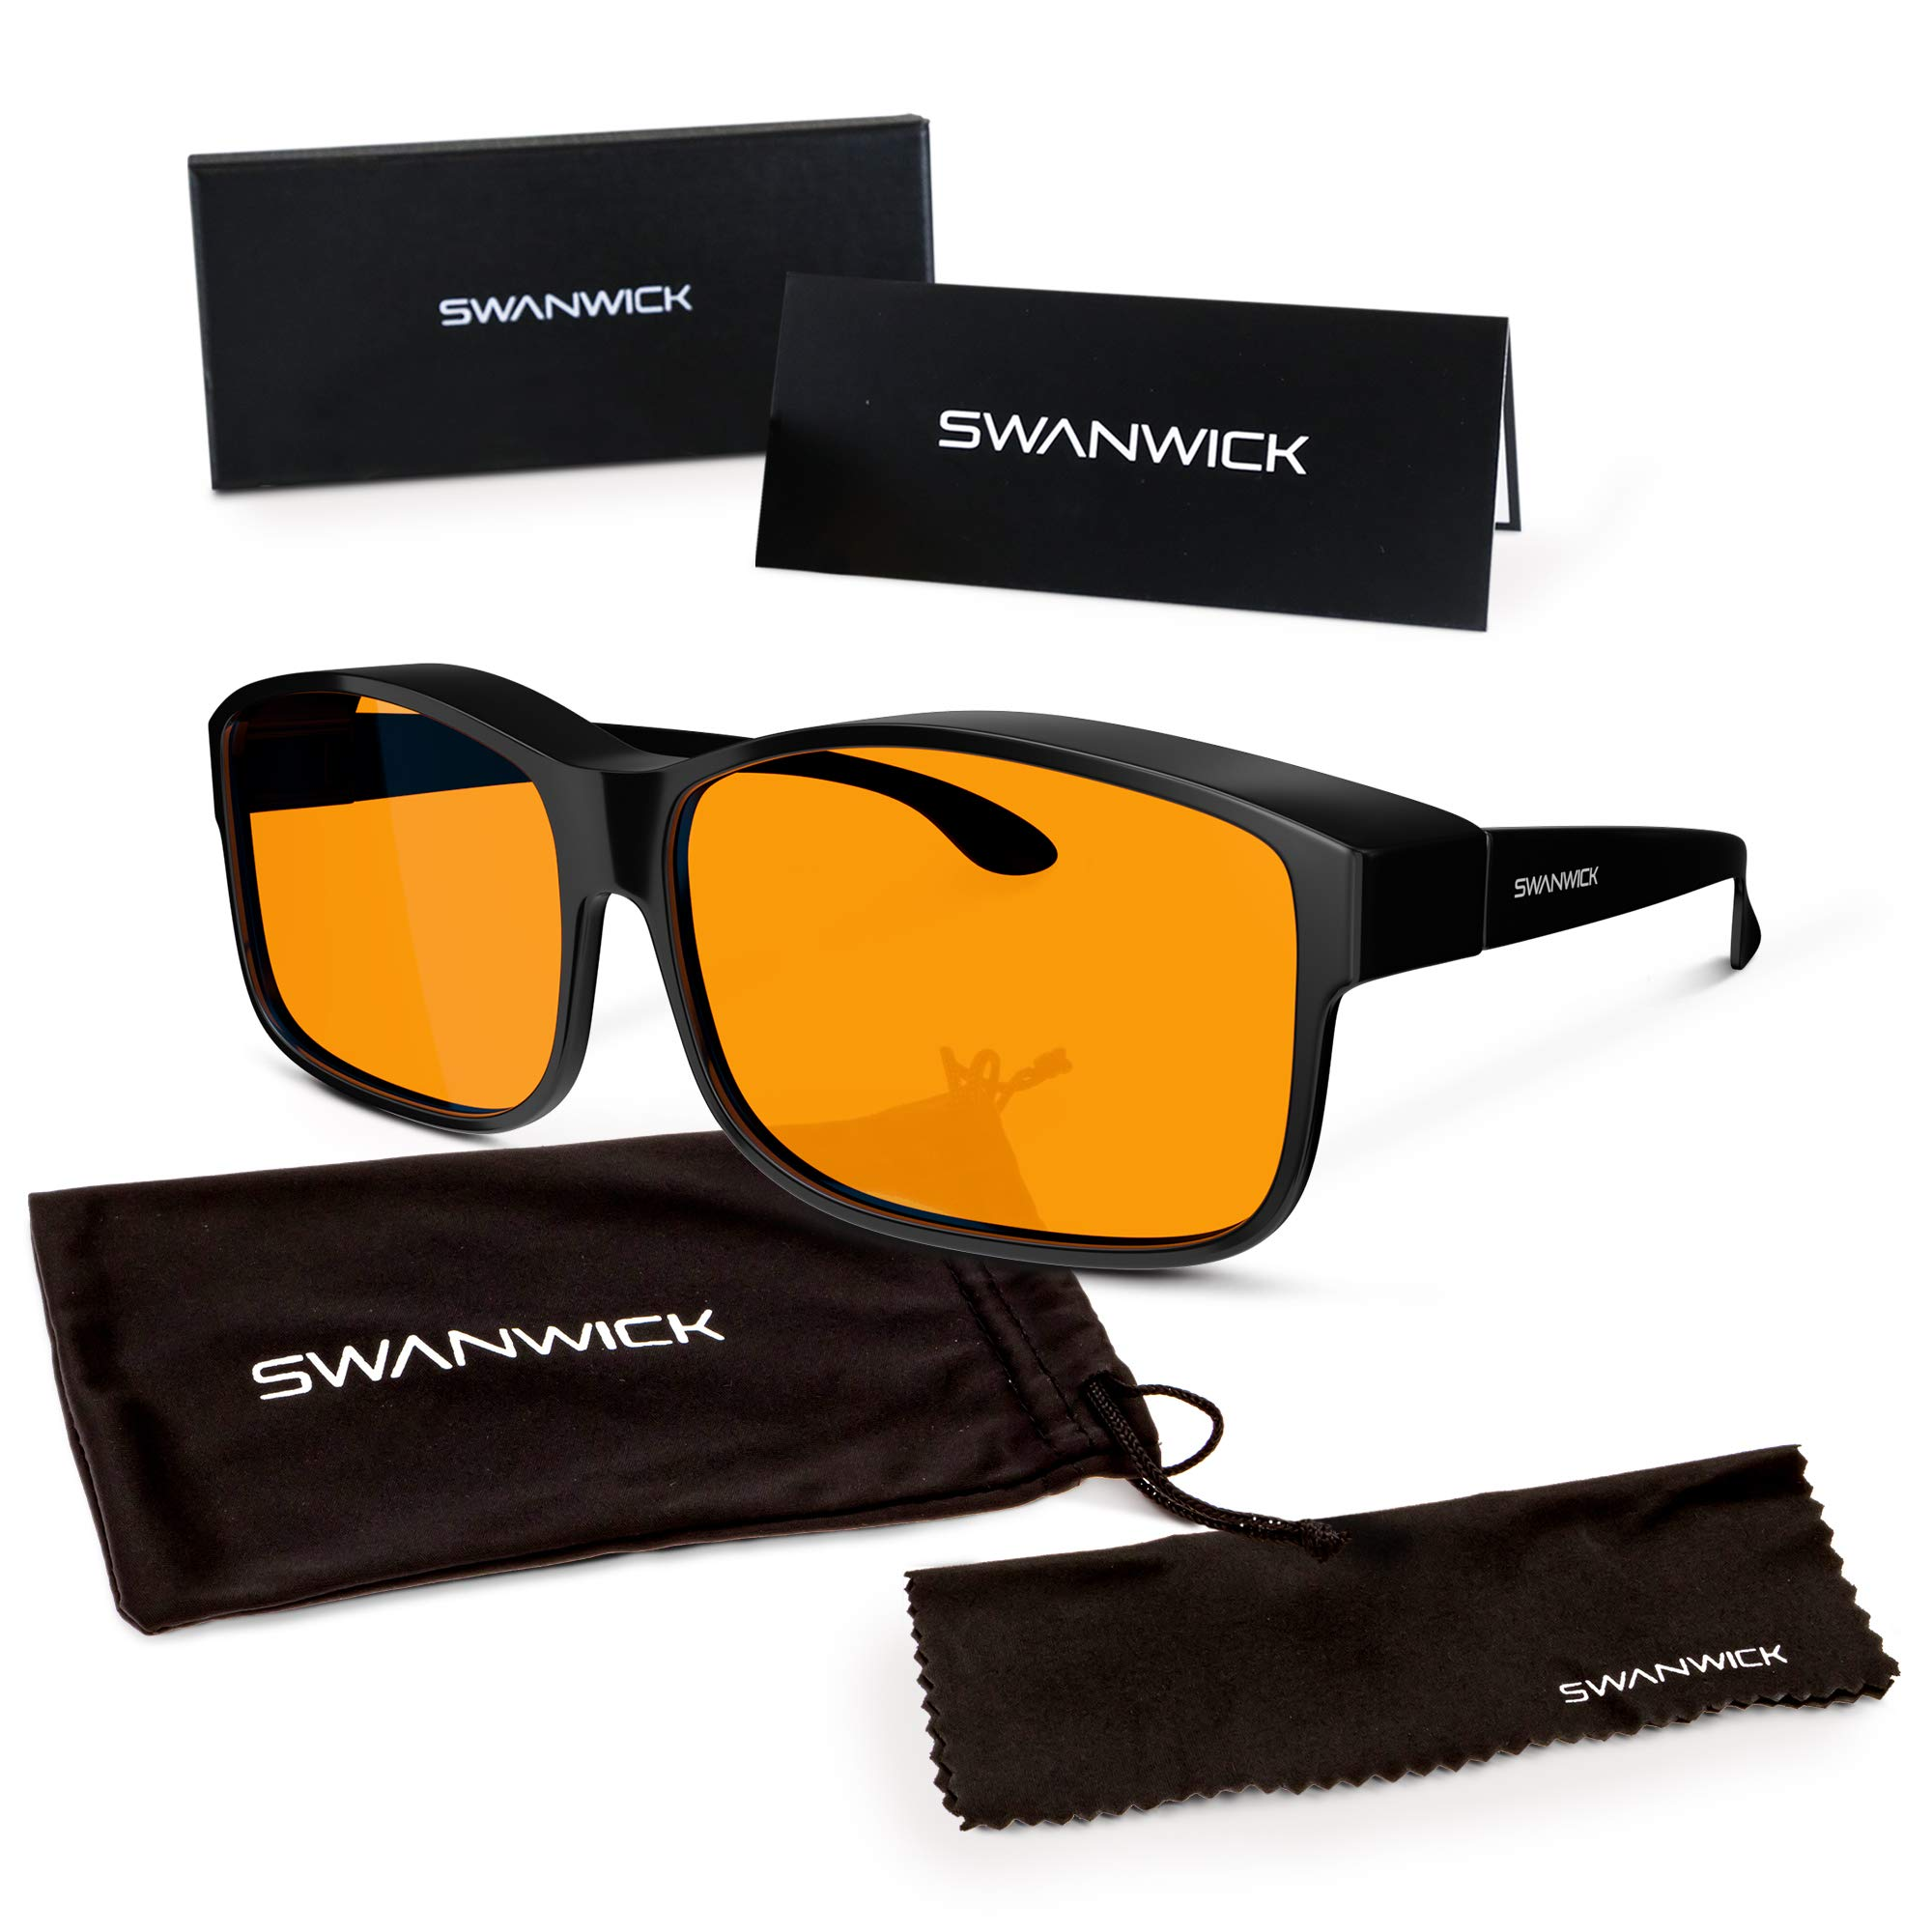 Swannies FITOVER Blue Light Blocking Glasses for Night USE with an Orange Tint Wearable Over Your Readers or Prescription Spectacles - (Black) Large by Swanwick Sleep